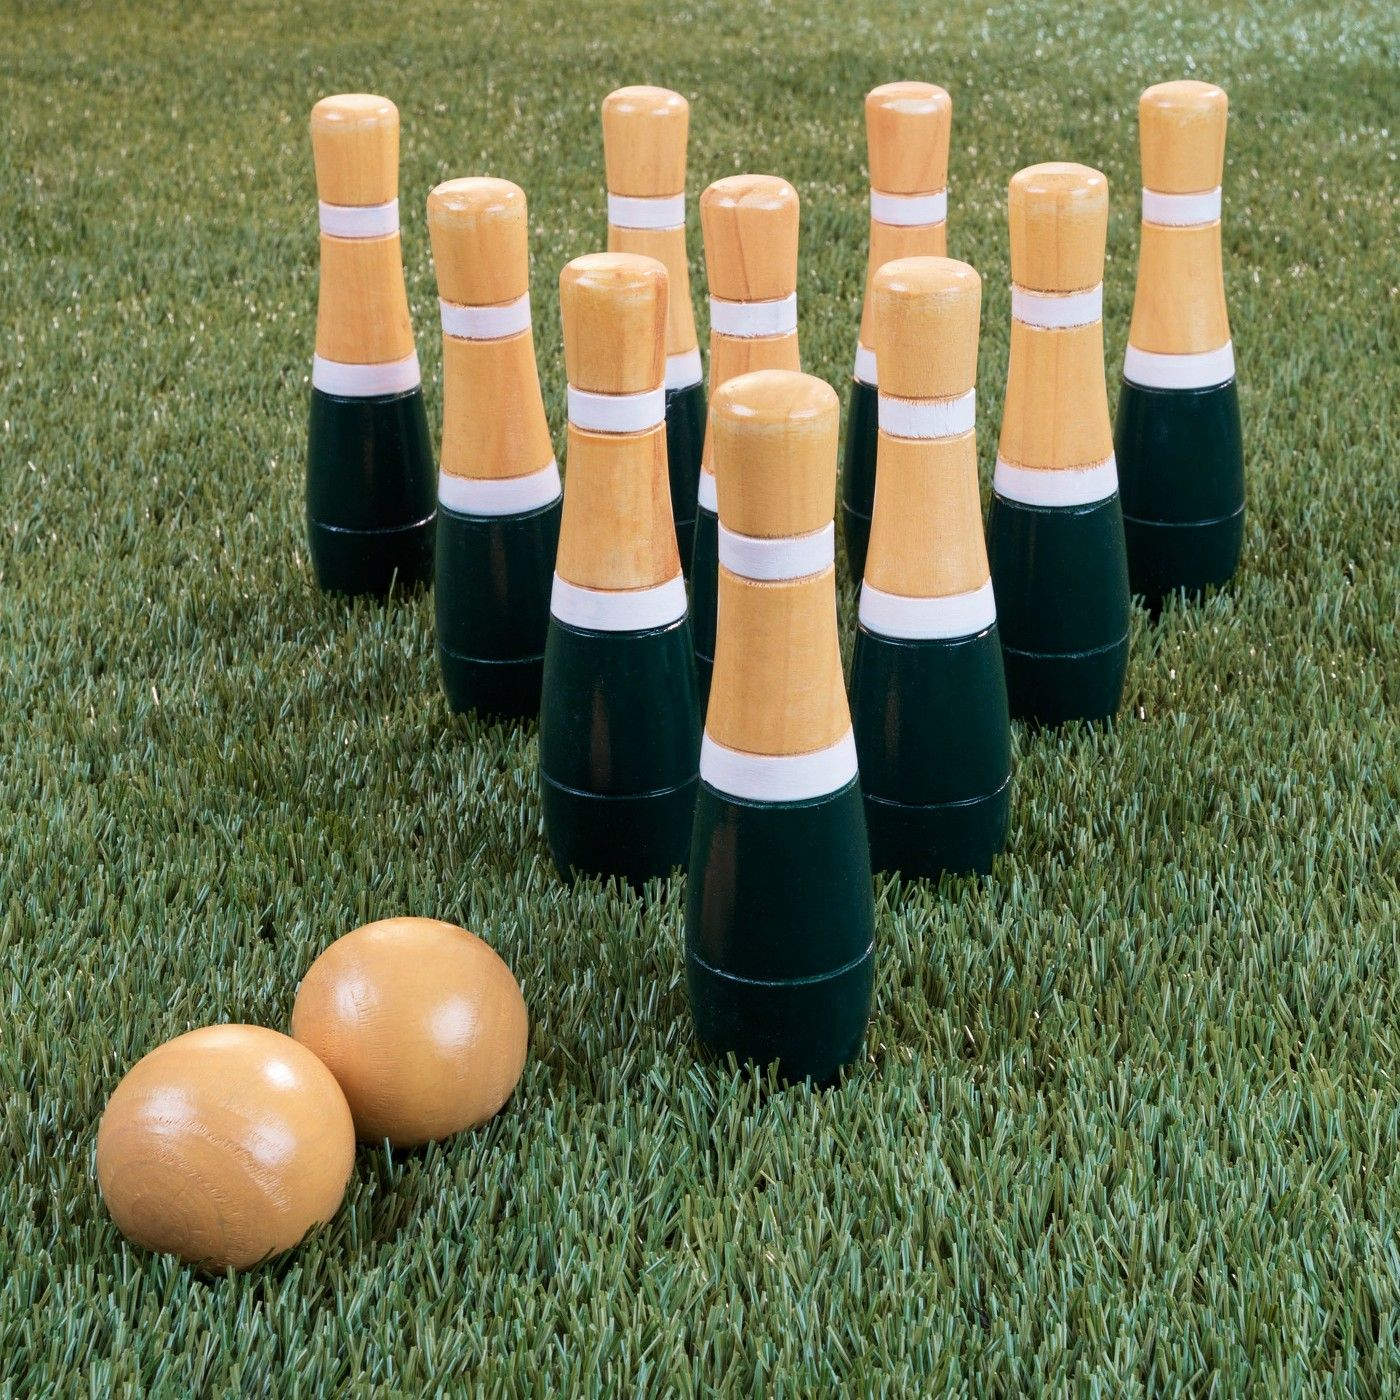 Hey play lawn bowlingskittle ball game set image 5 of